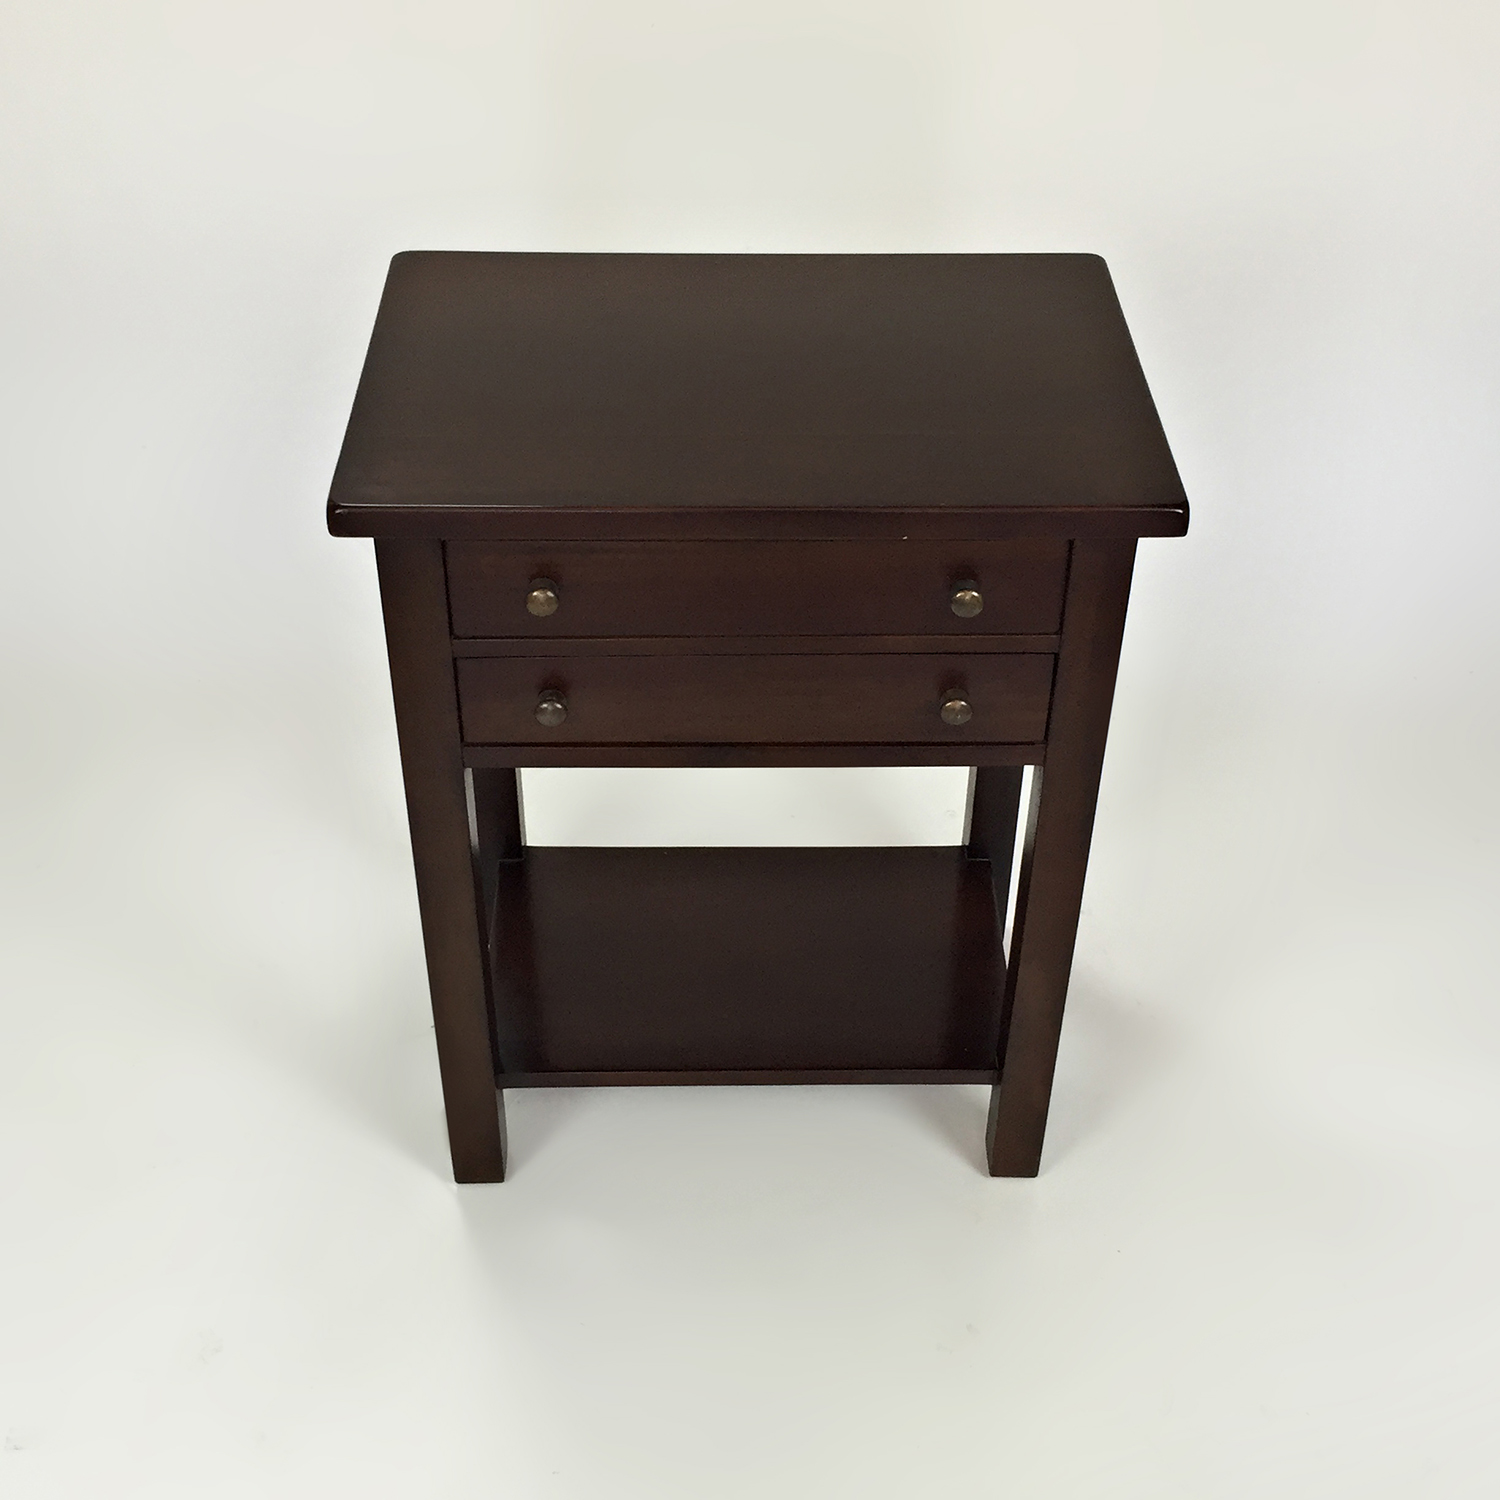 shop Home Goods End Table Home Goods End Tables